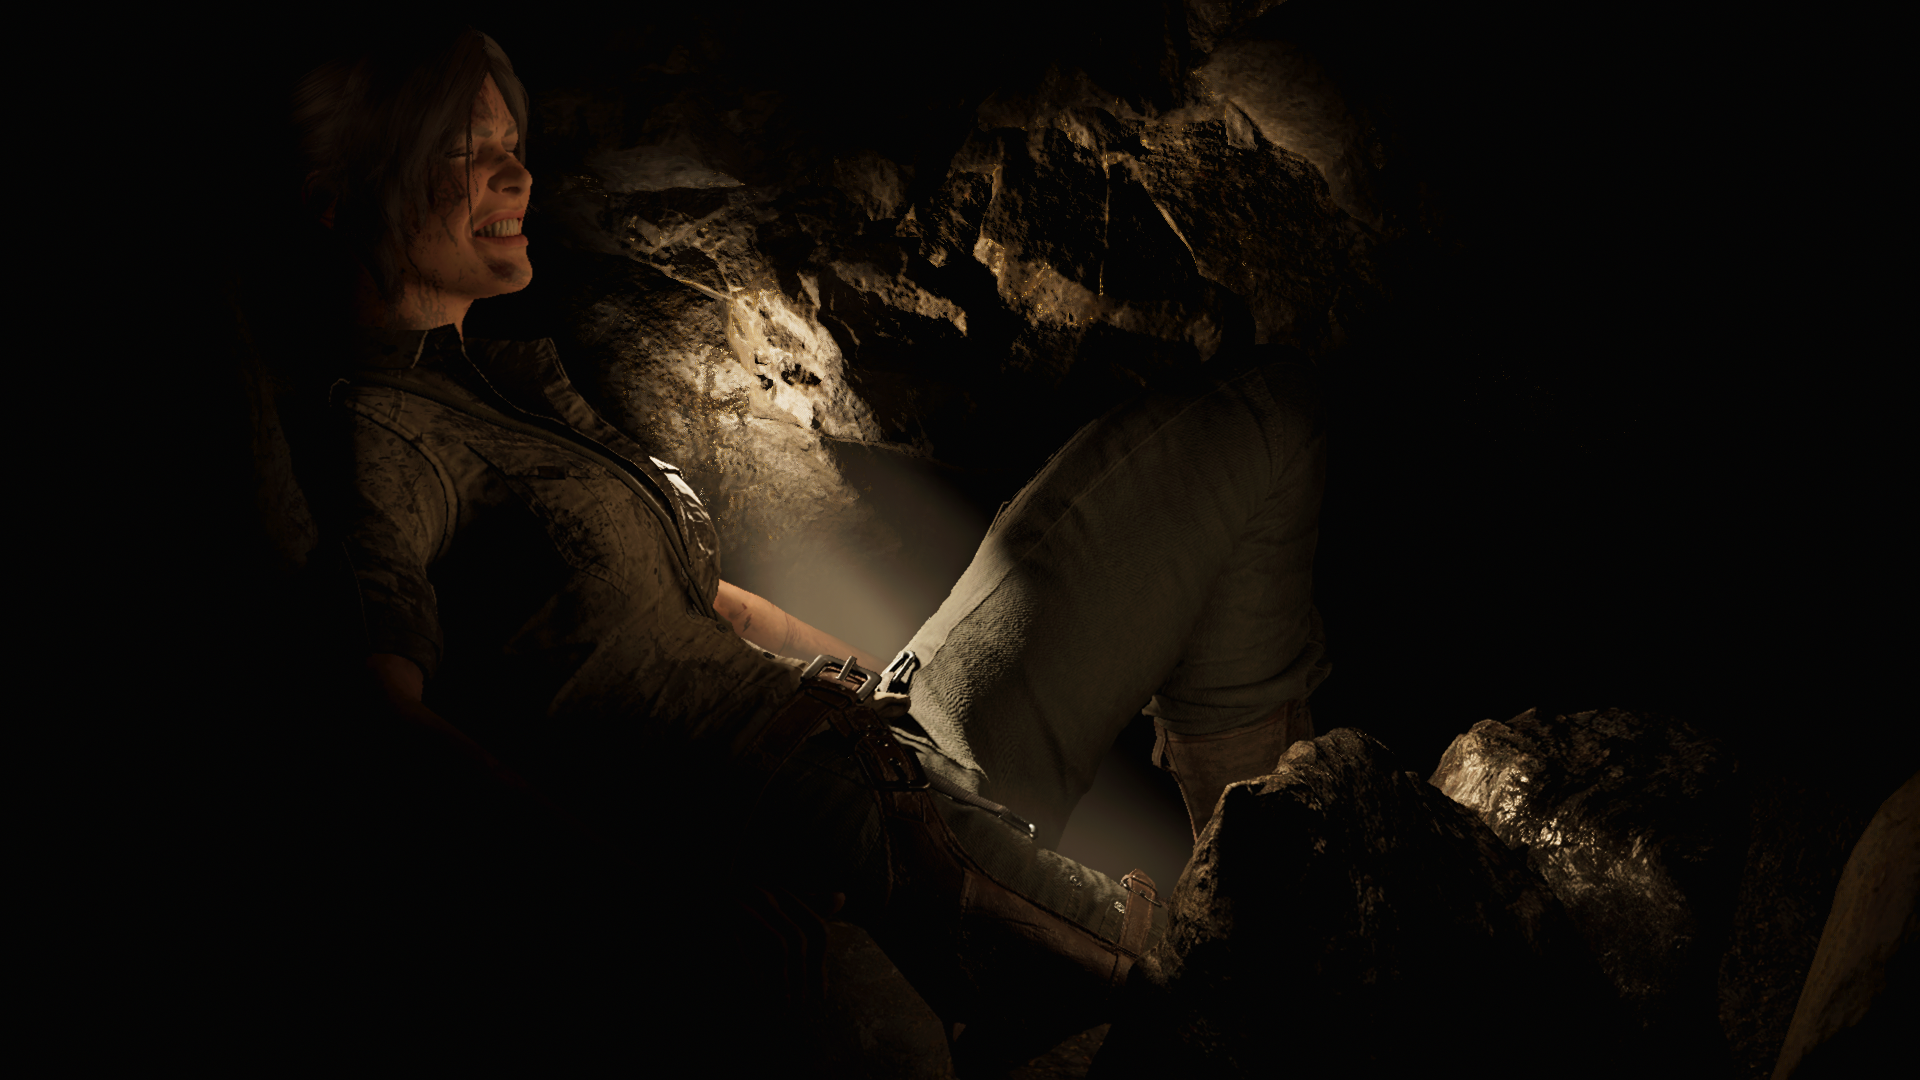 Shadow of the Tomb Raider Screenshot 2018.11.18 - 13.35.12.26.png - Shadow of the Tomb Raider